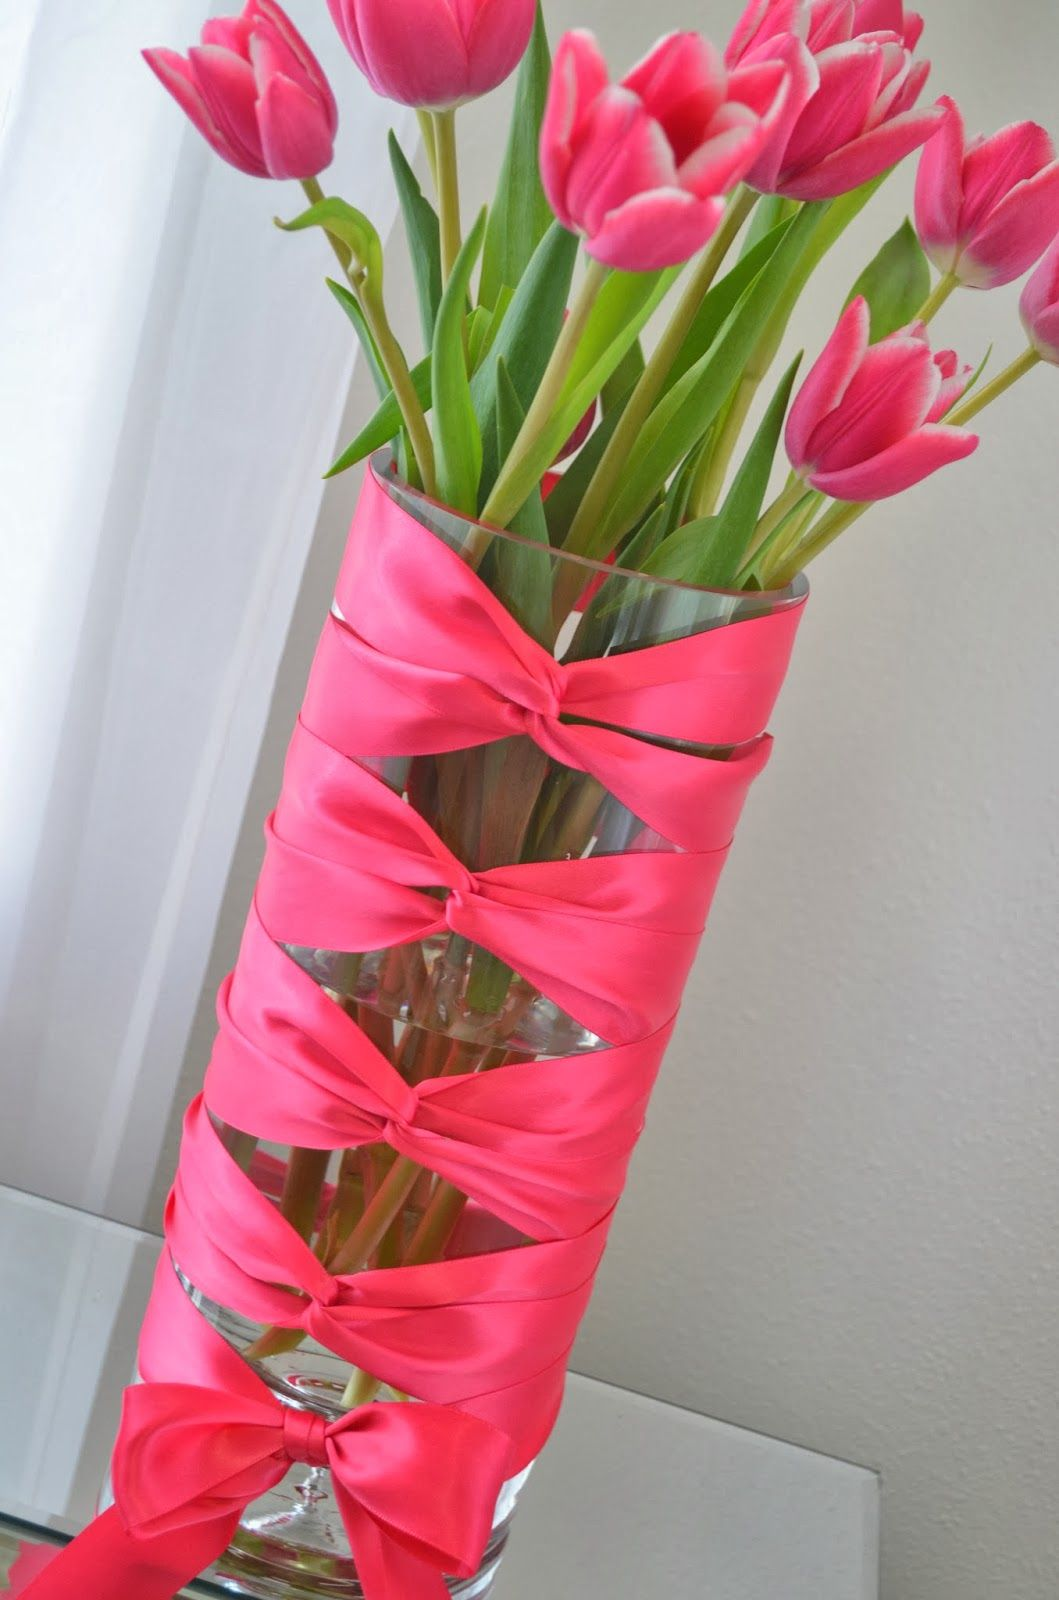 Flower Vase Ideas For Decorating Diy Flower Vase Idea Corset Vase With Tulips Decor